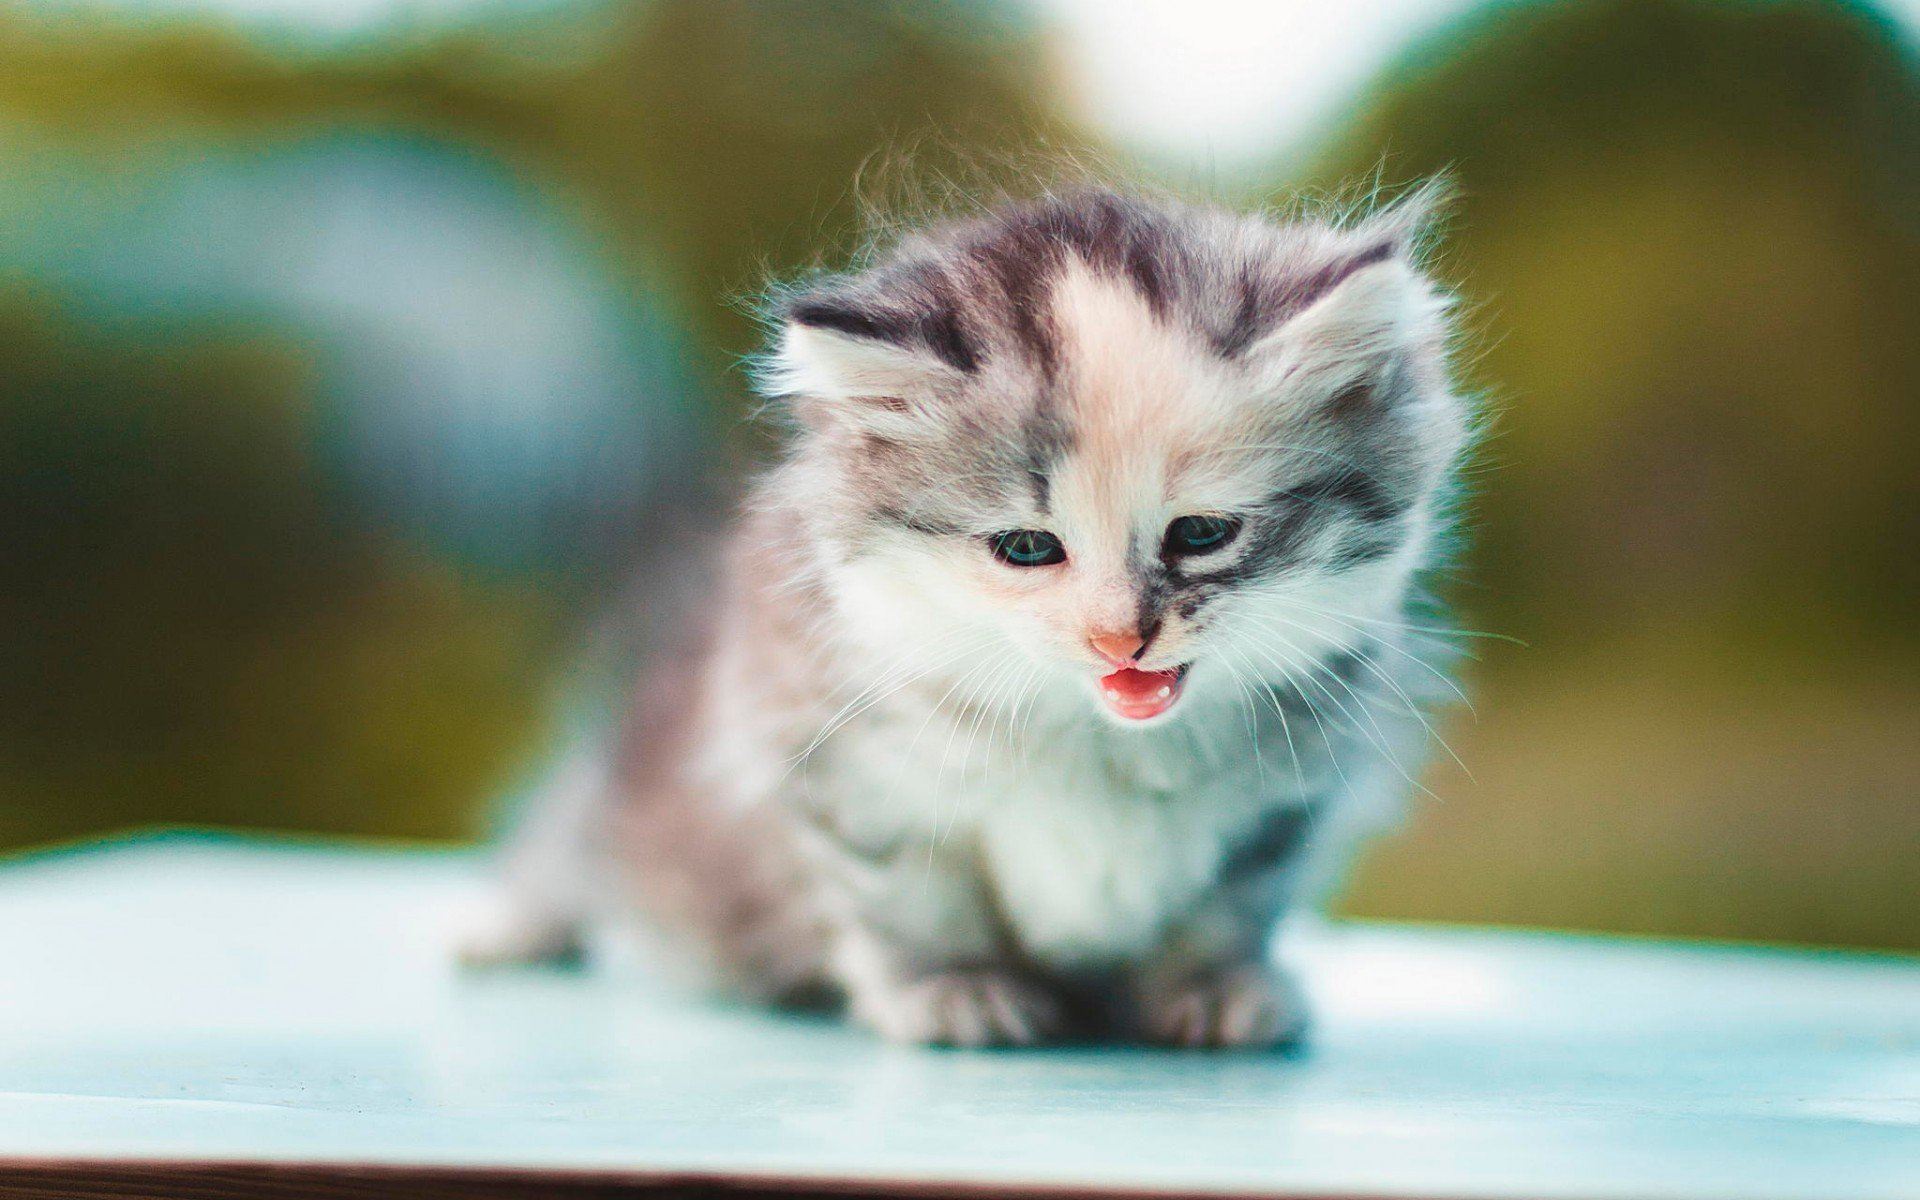 Kitten wallpapers photos and desktop backgrounds up to 8k - Kitten backgrounds ...